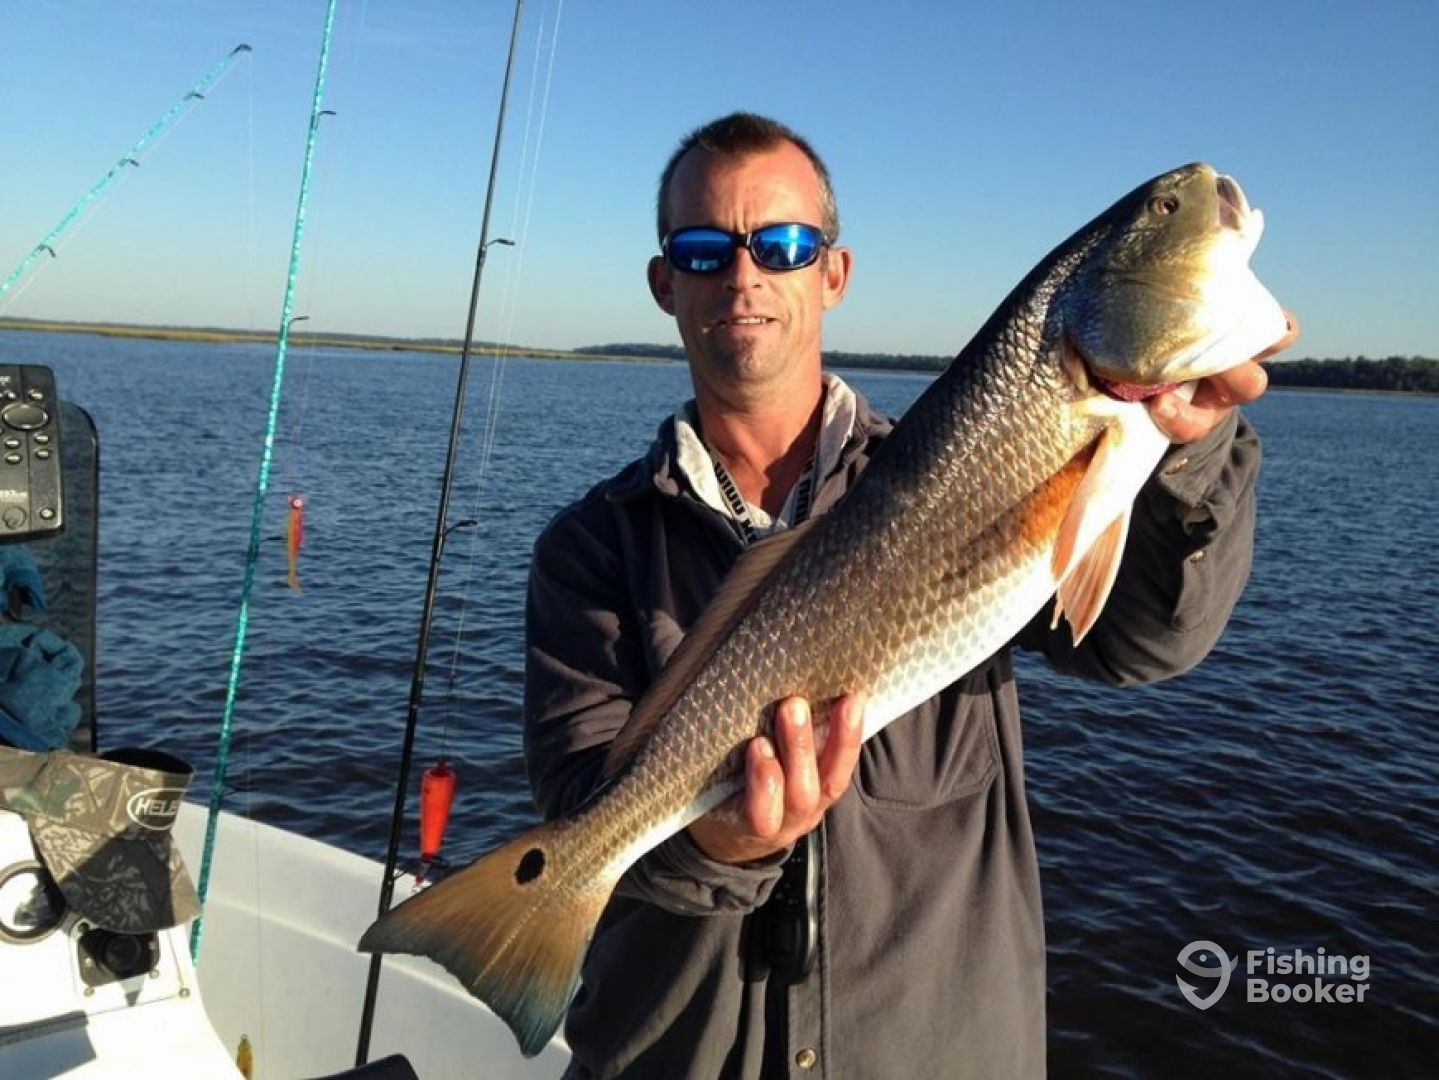 Naked fly fishing charters st marys ga fishingbooker for Fly fishing charters